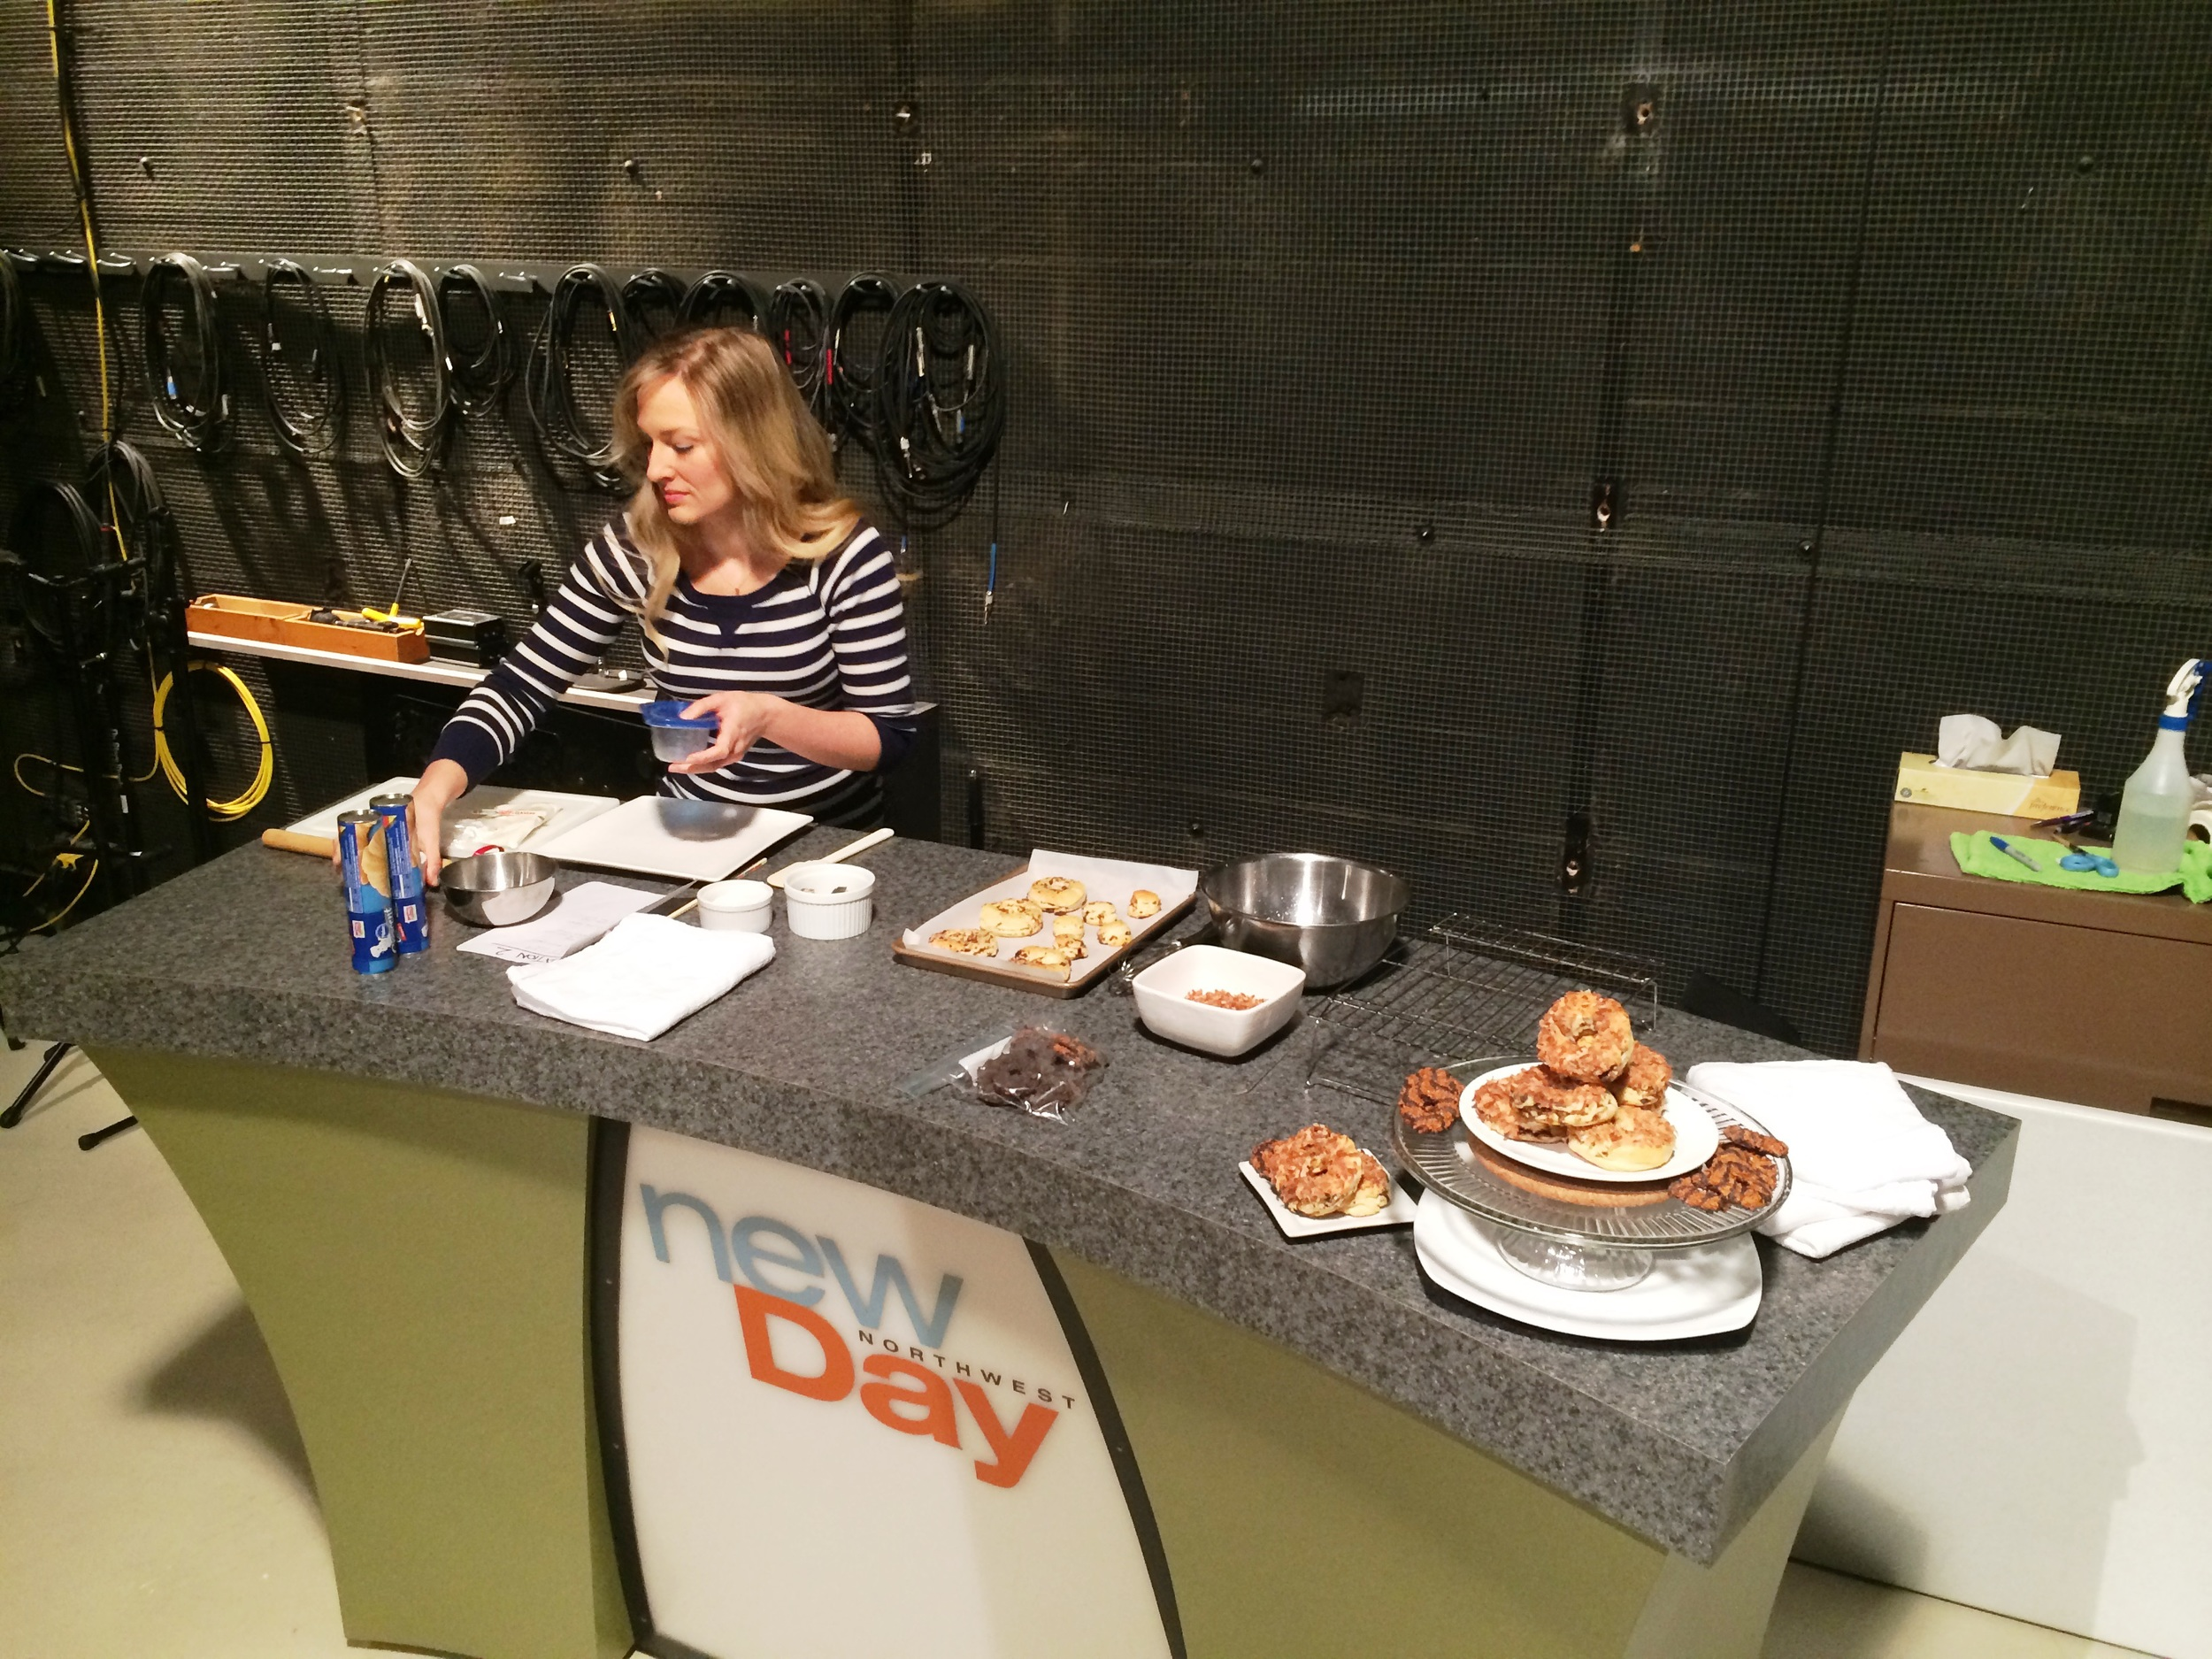 Siiri prepping her station on New Day Northwest